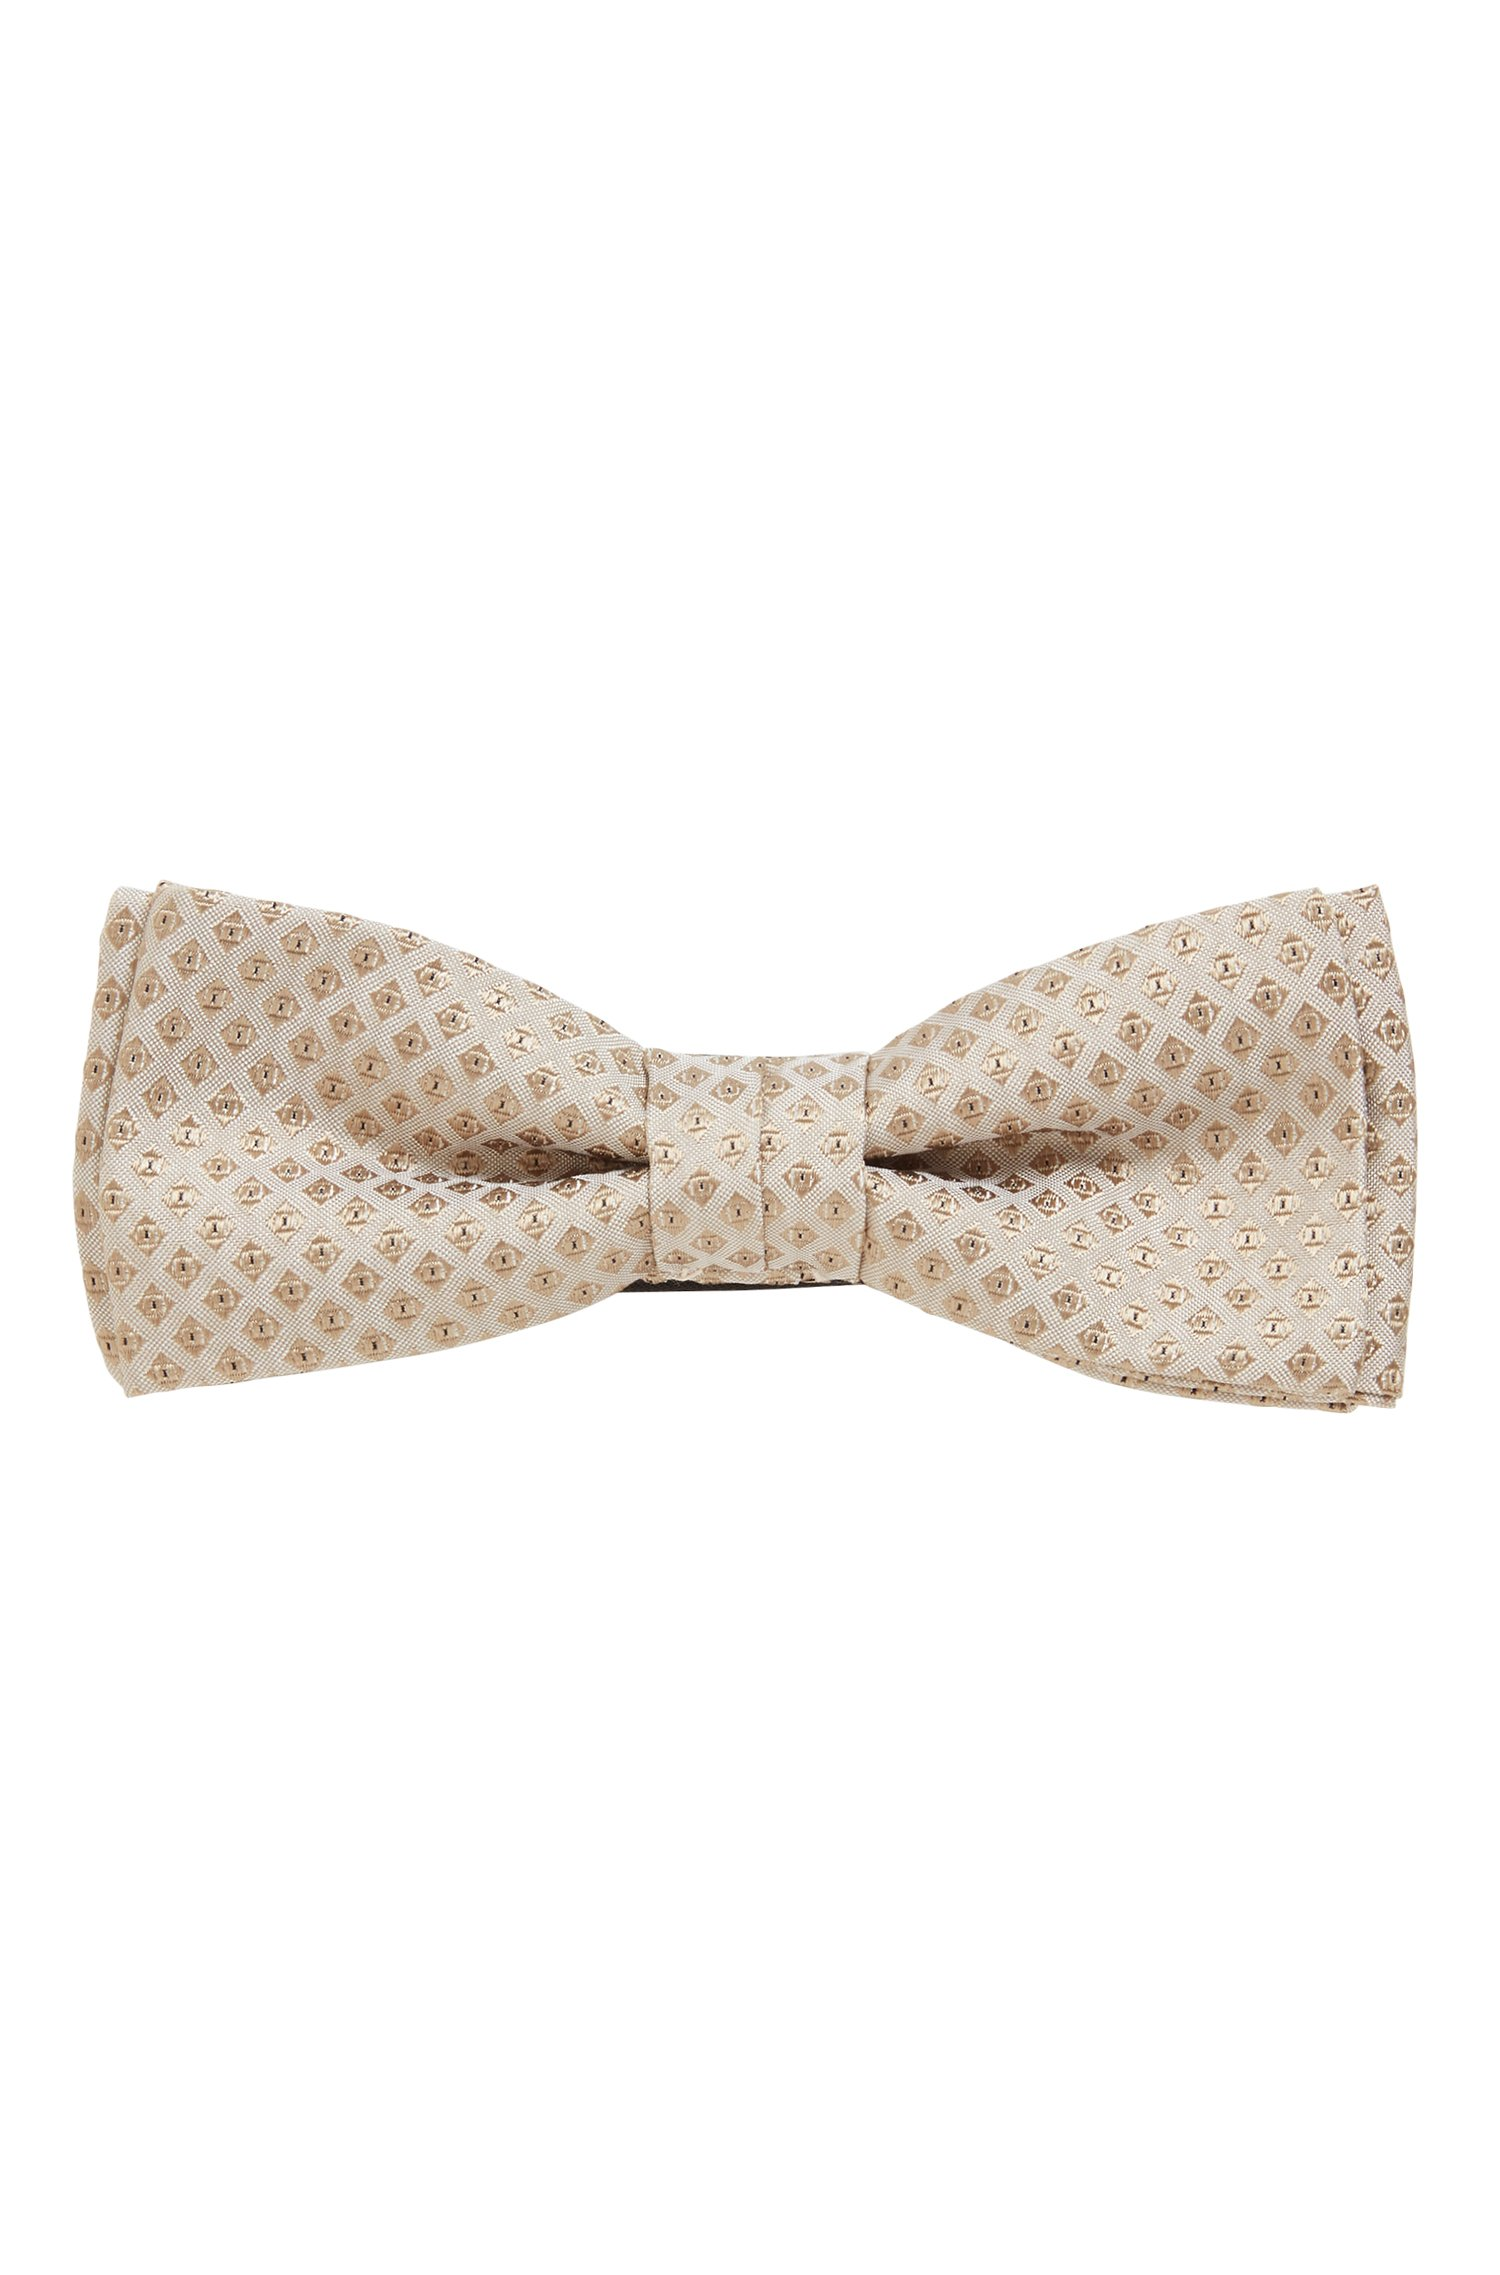 Micro-patterned bow tie in silk jacquard, Beige Patterned